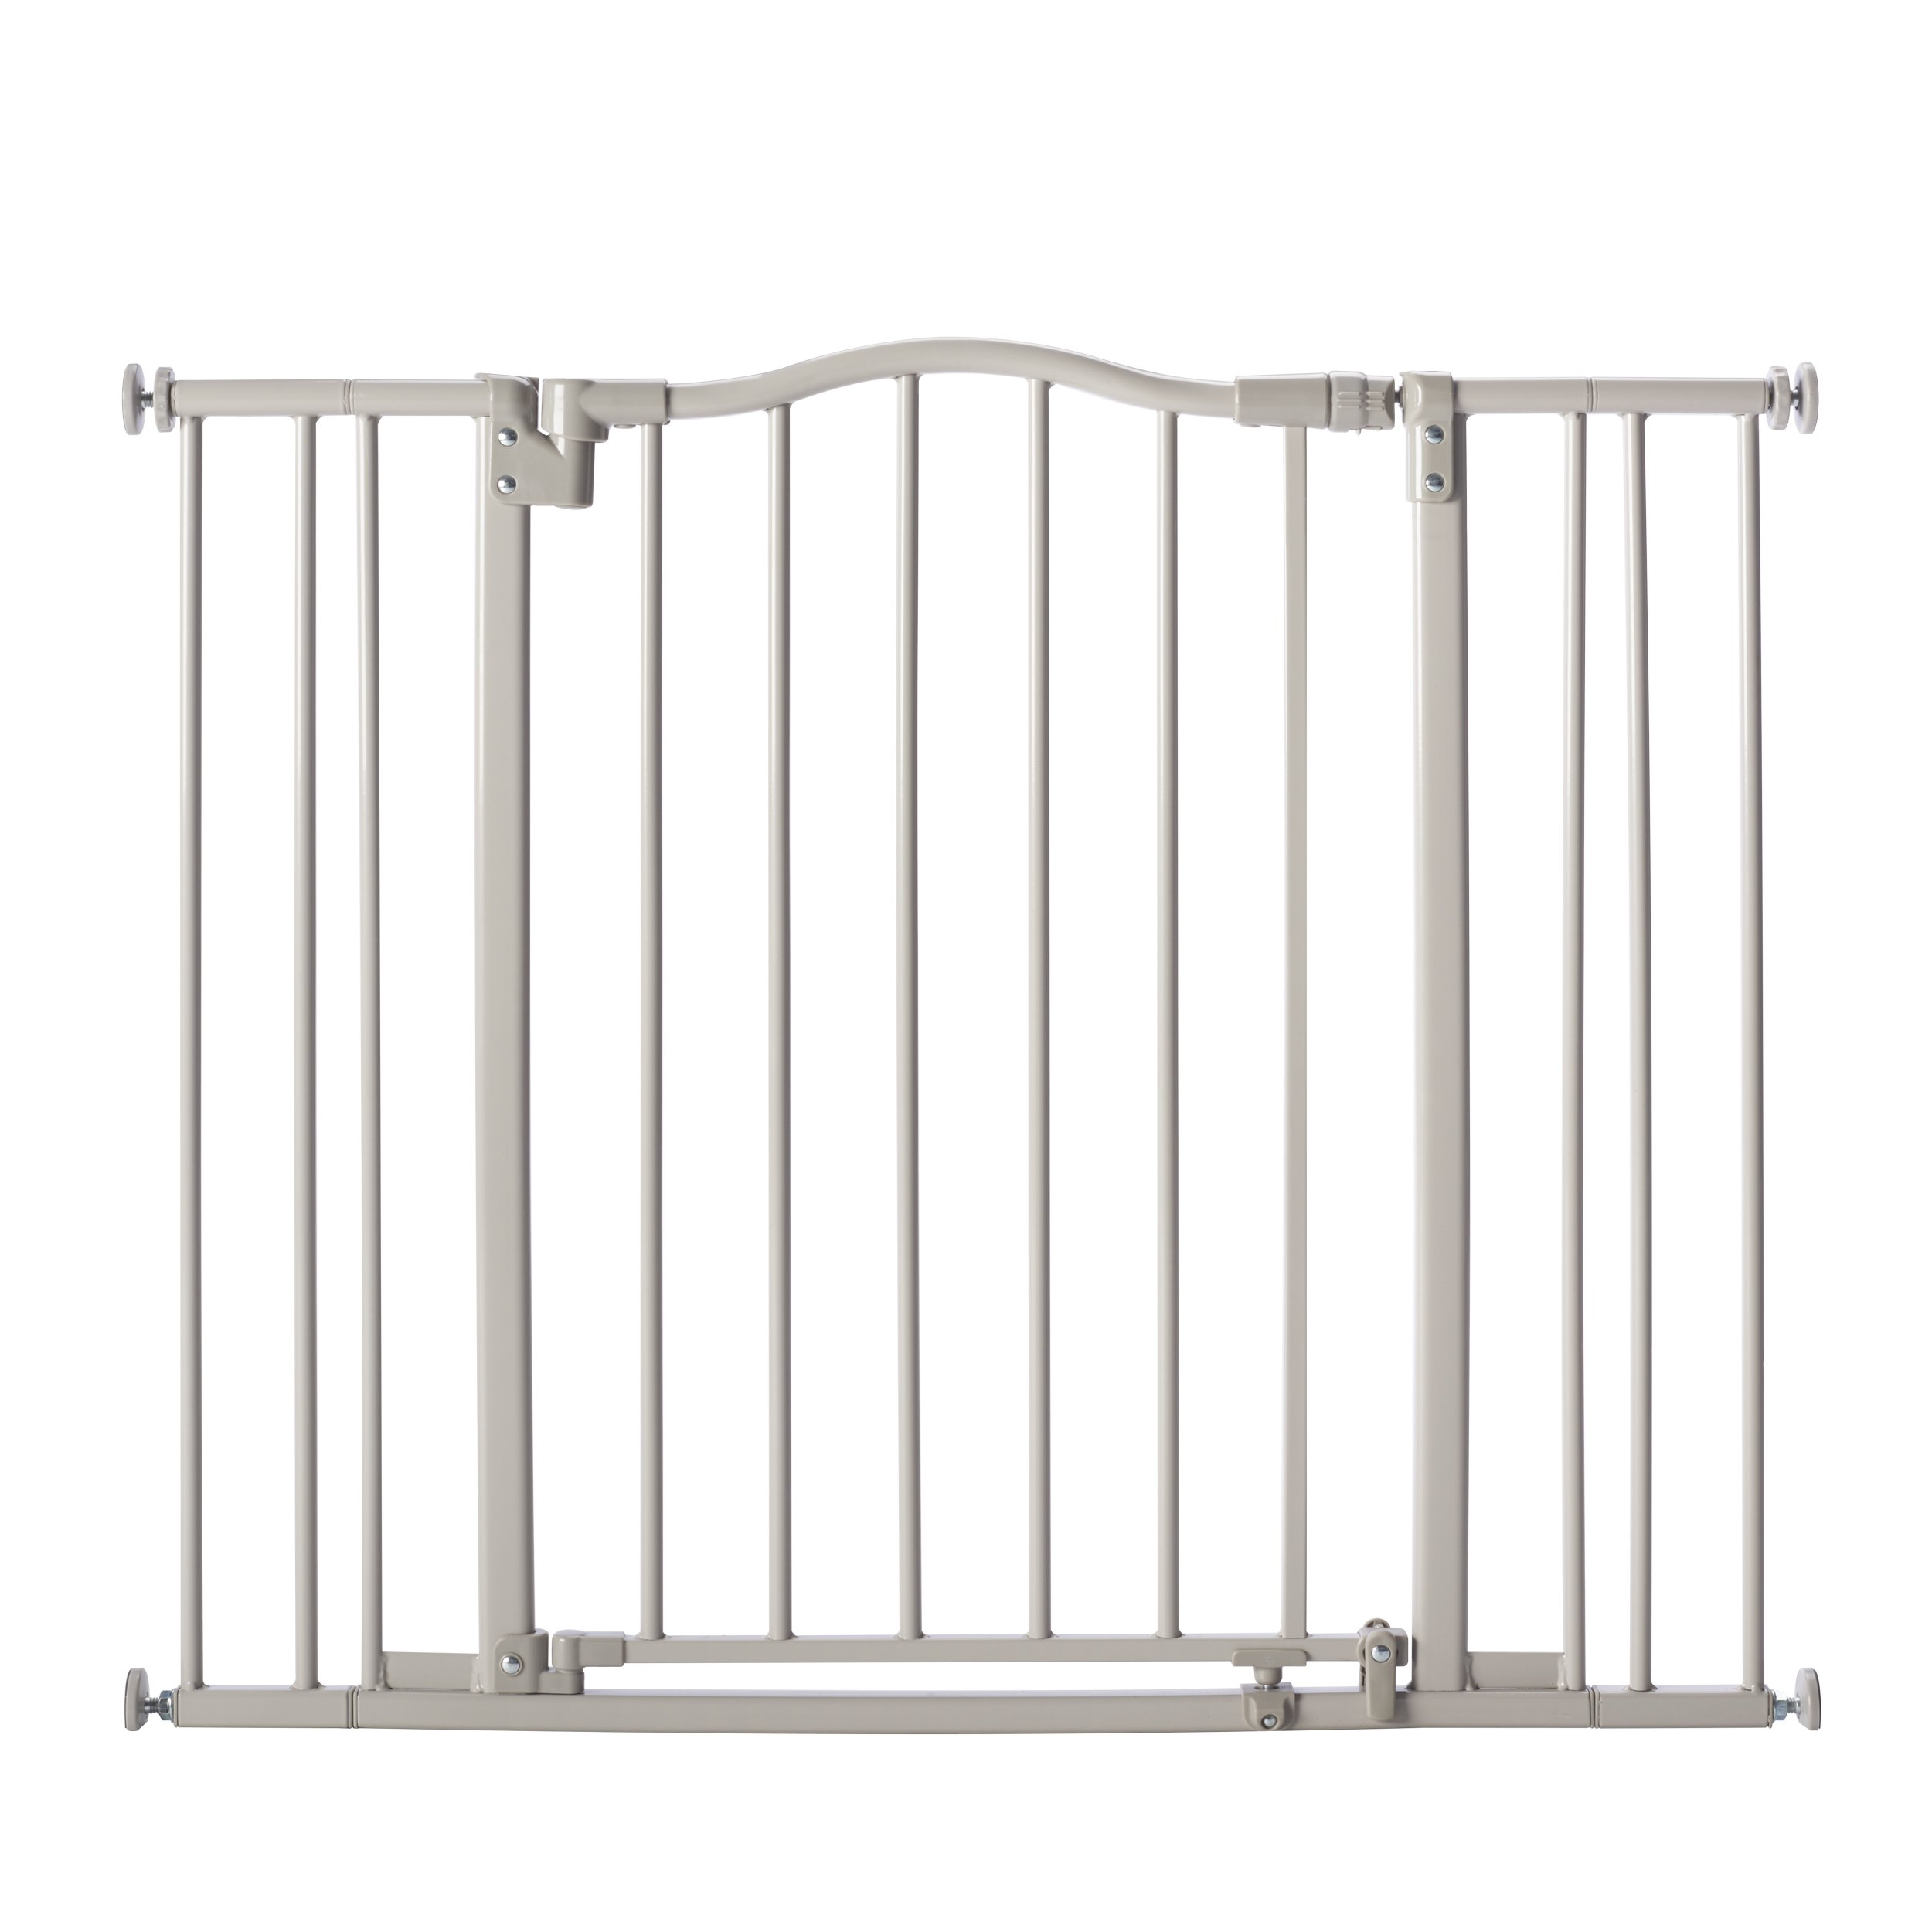 Supergate Arched Auto Close Gate, Grey, Fits Spaces between 28.75'' to 38.25'' wide and 30'' High